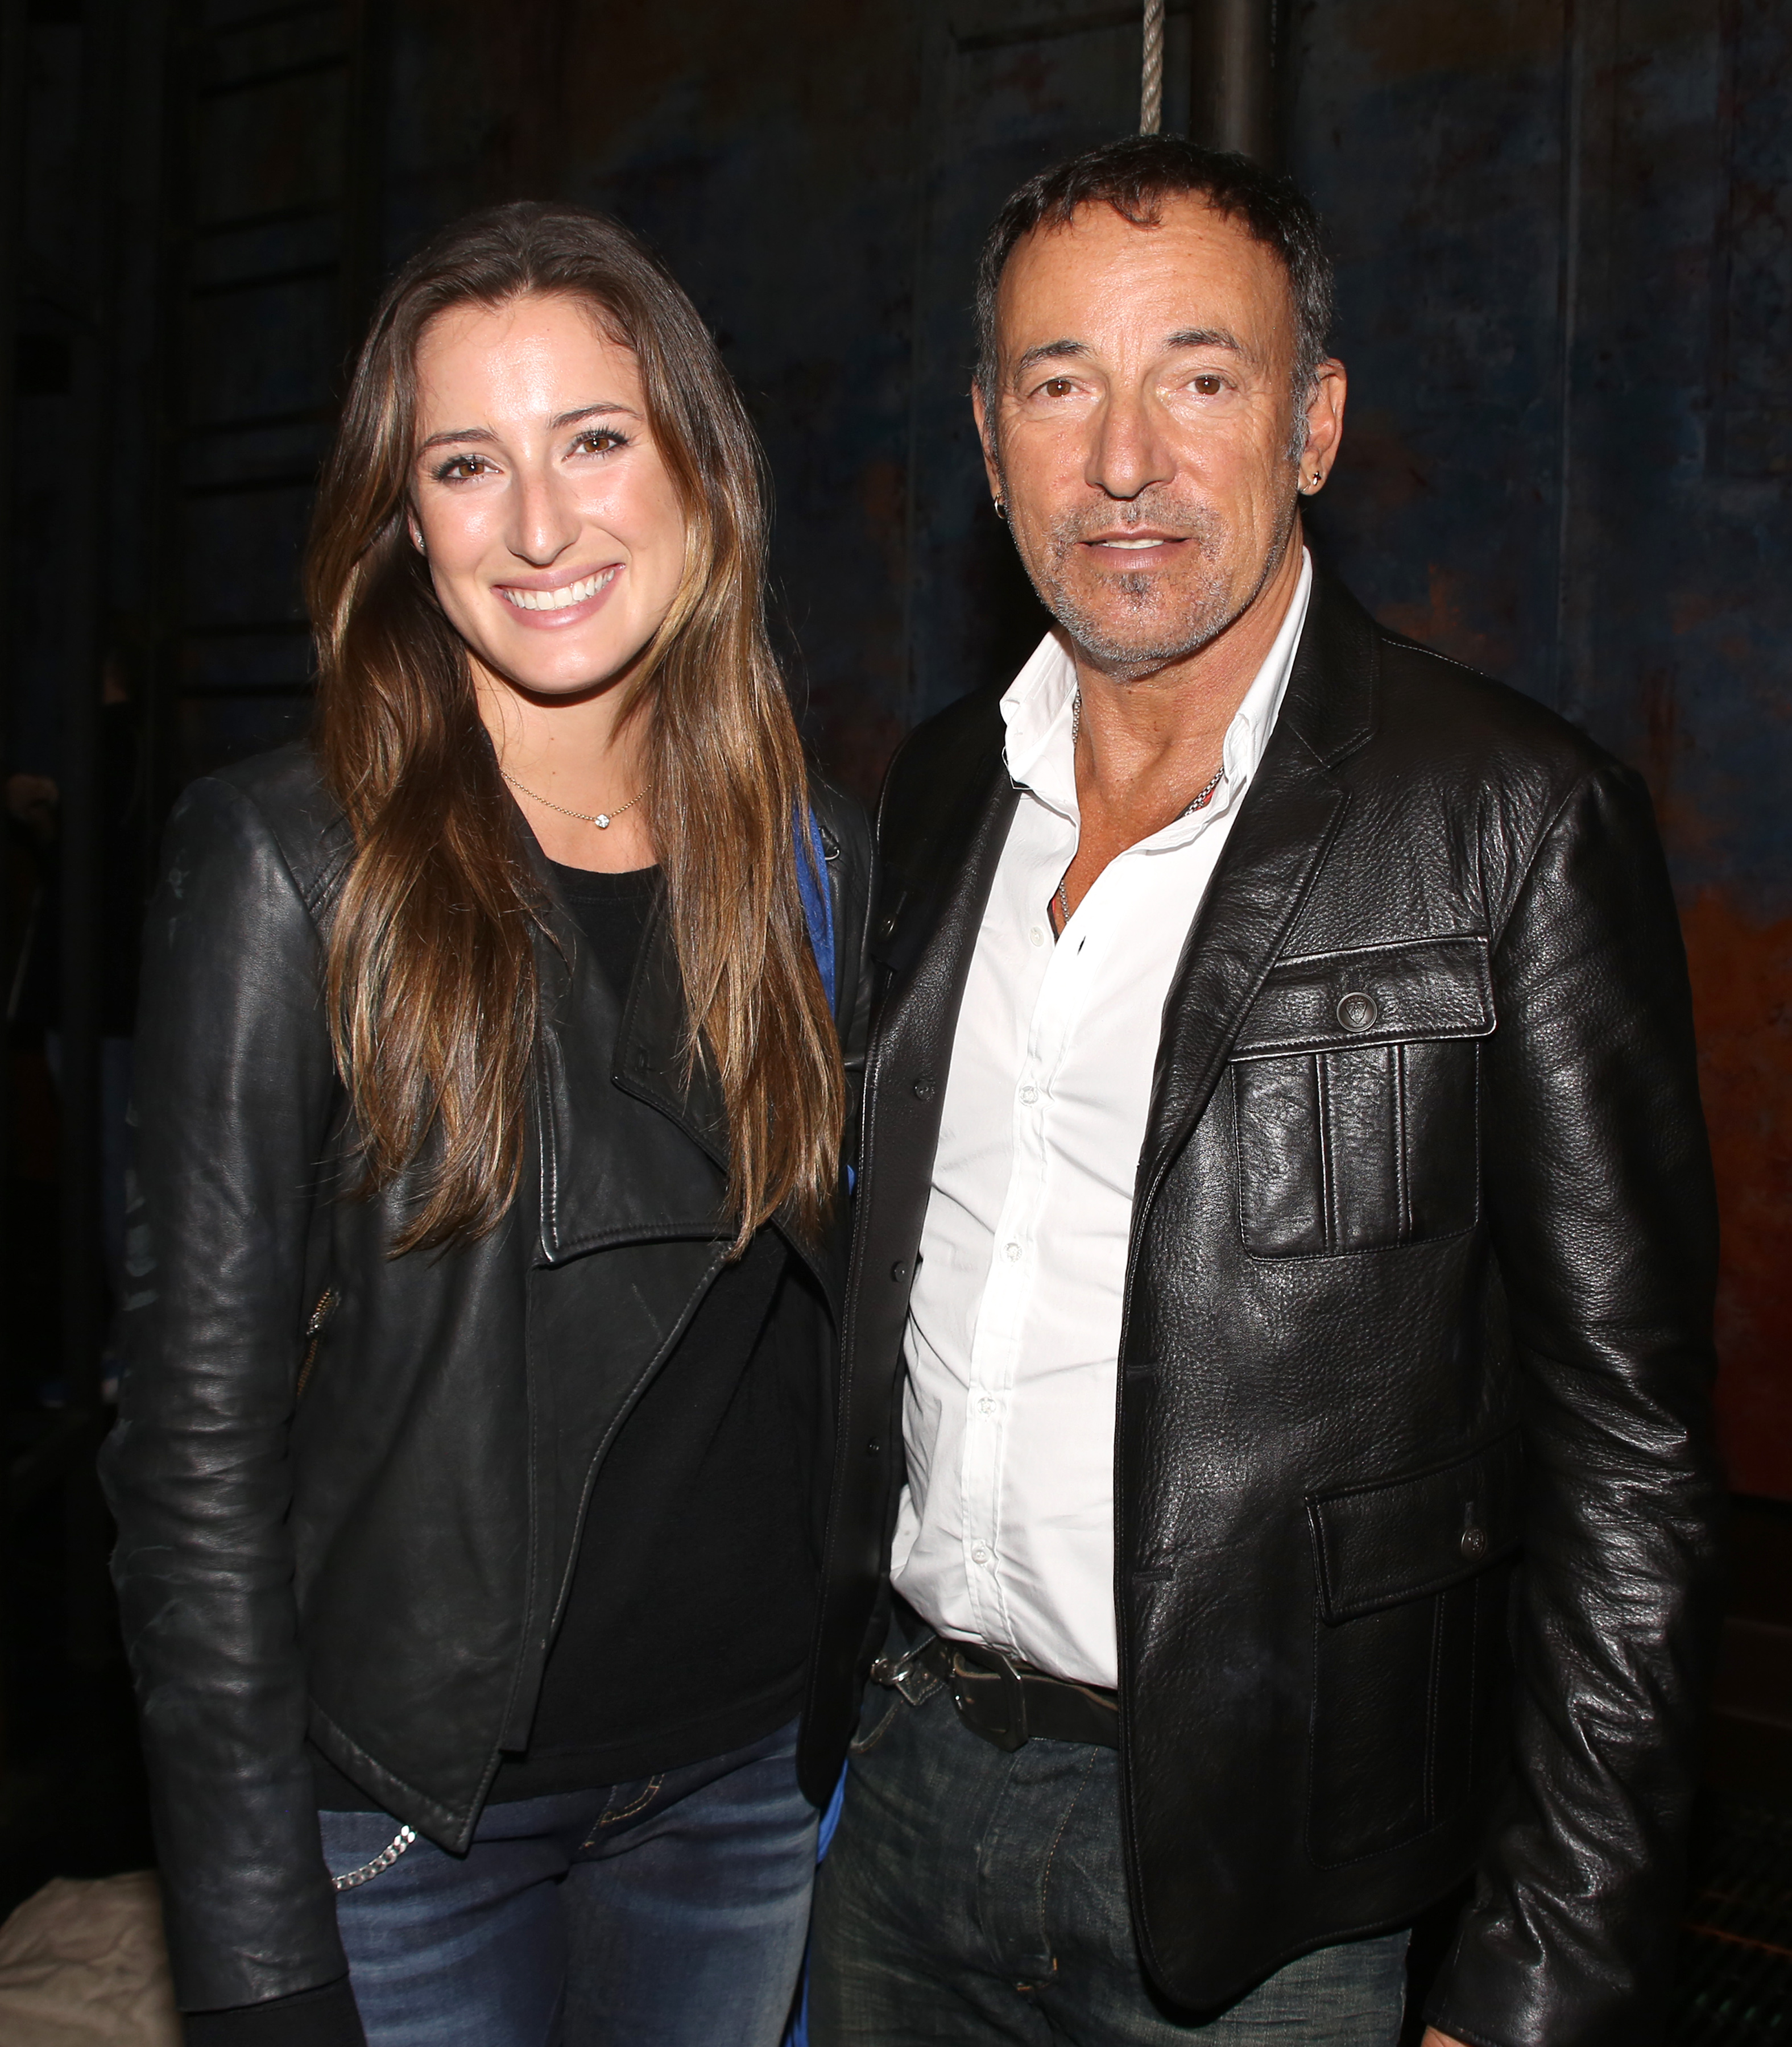 Jessica Springsteen and Bruce Springsteen backstage after a performance of 'The Last Ship' at the Neil Simon Theatre on October 15, 2014 in New York City.